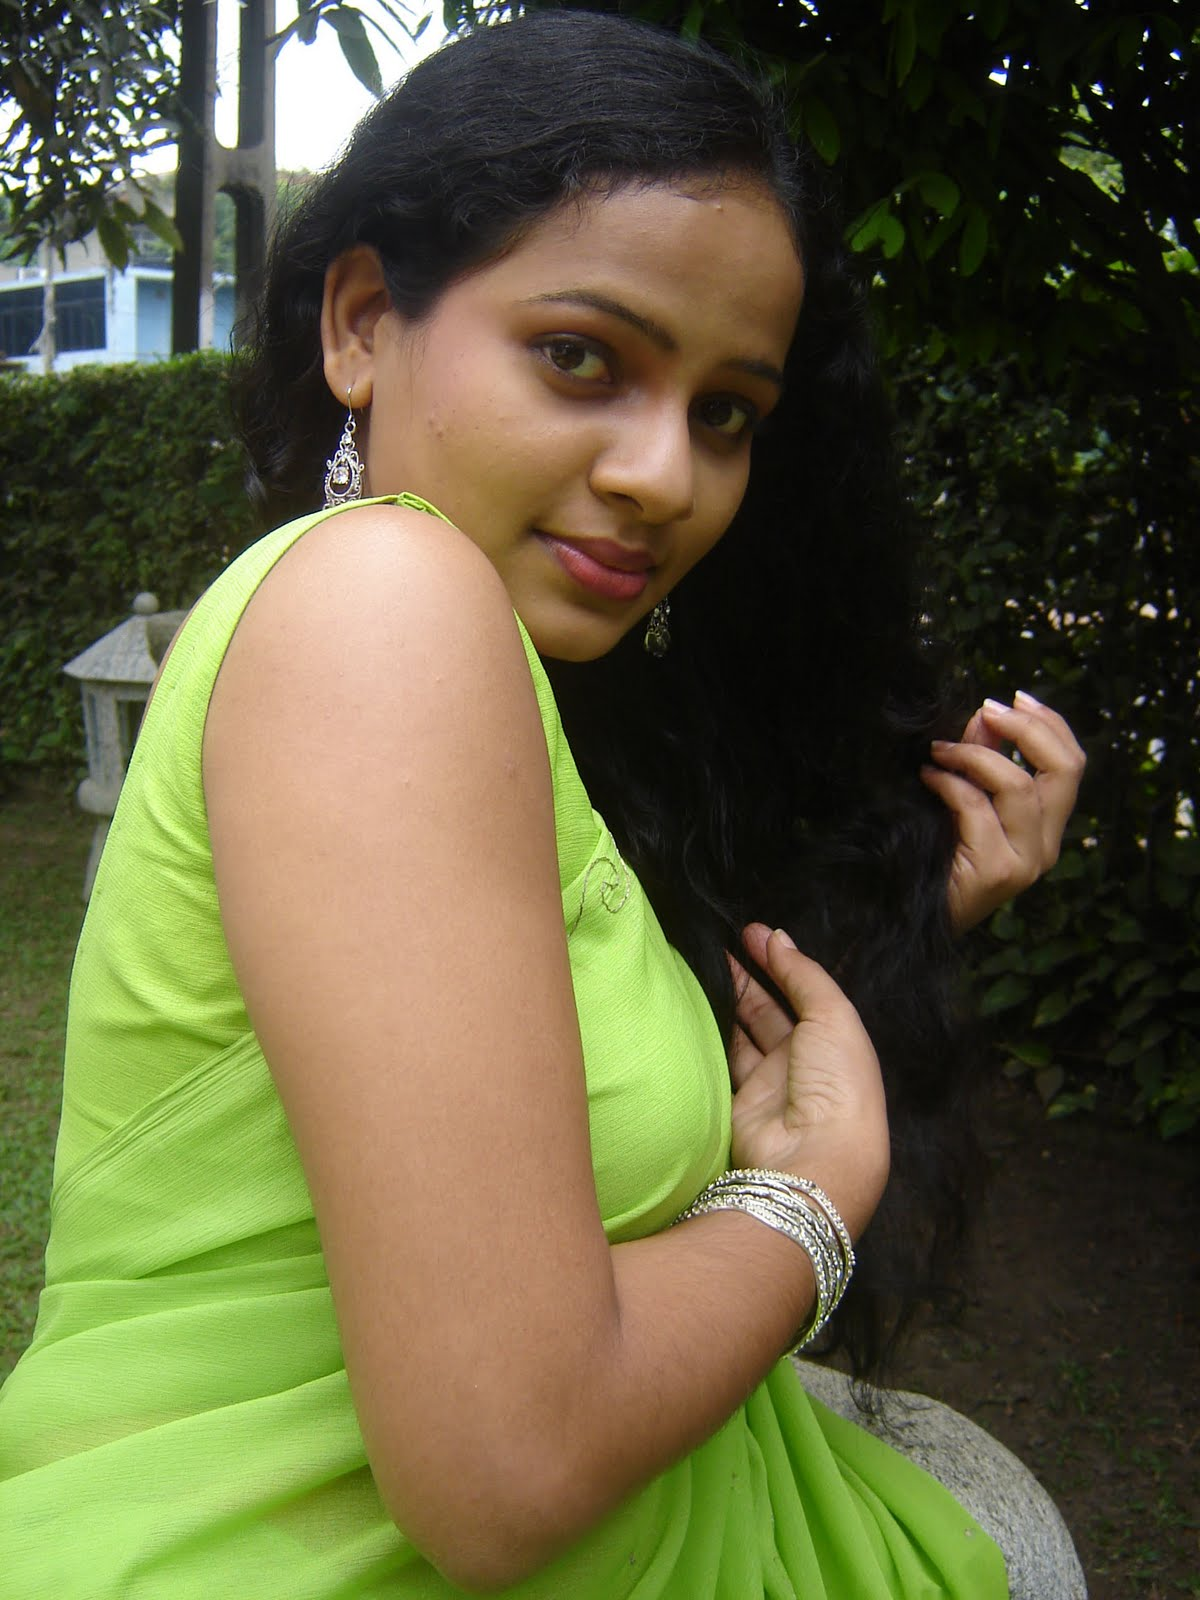 Hd very hot indian fucking sex pictures